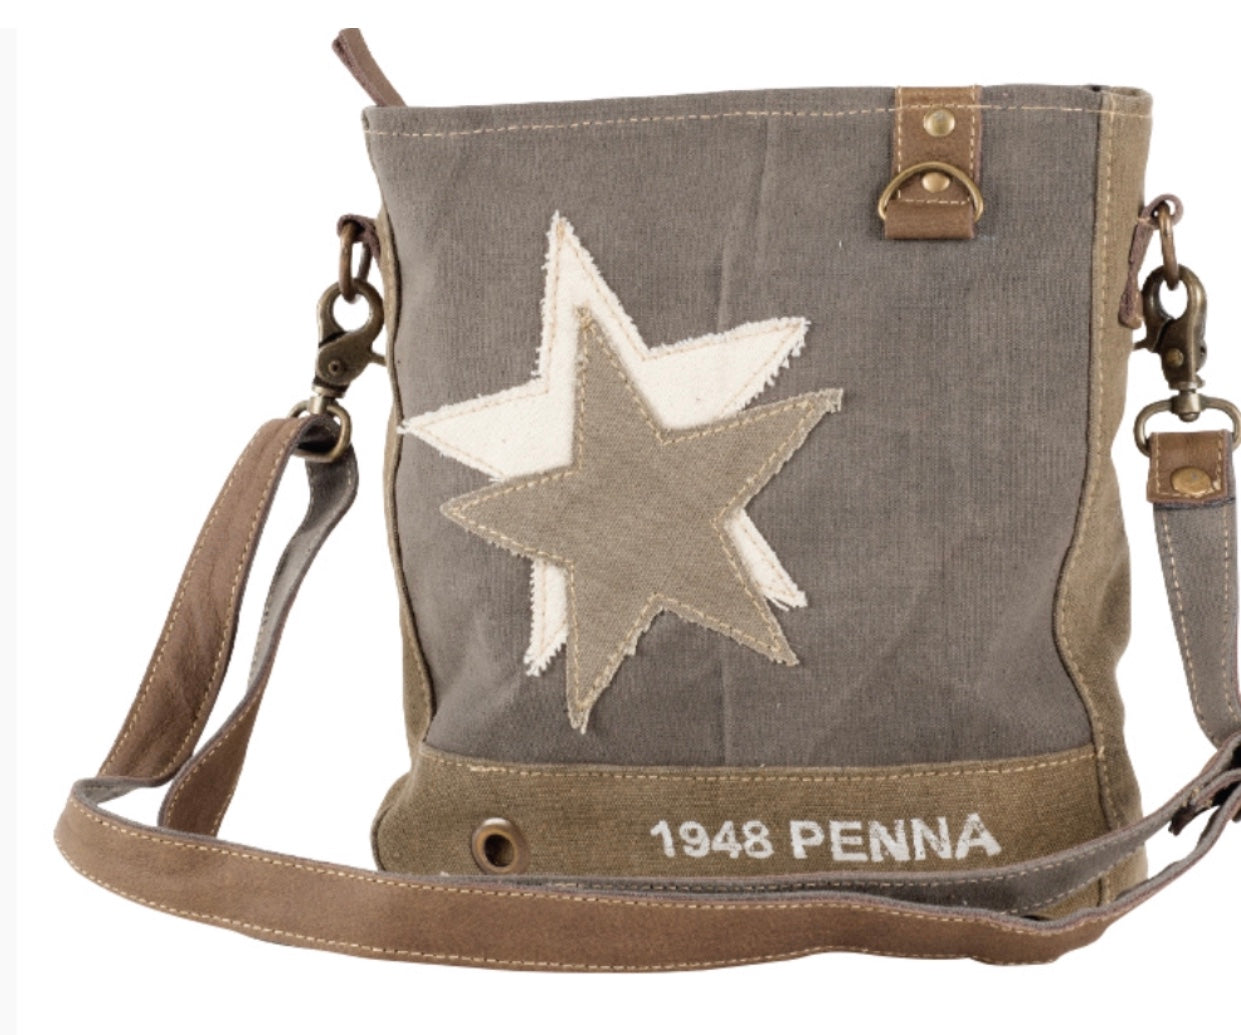 1948 PENNA DOUBLE STAR CROSSBODY CANVAS BAG - The Wall Kids, Inc.